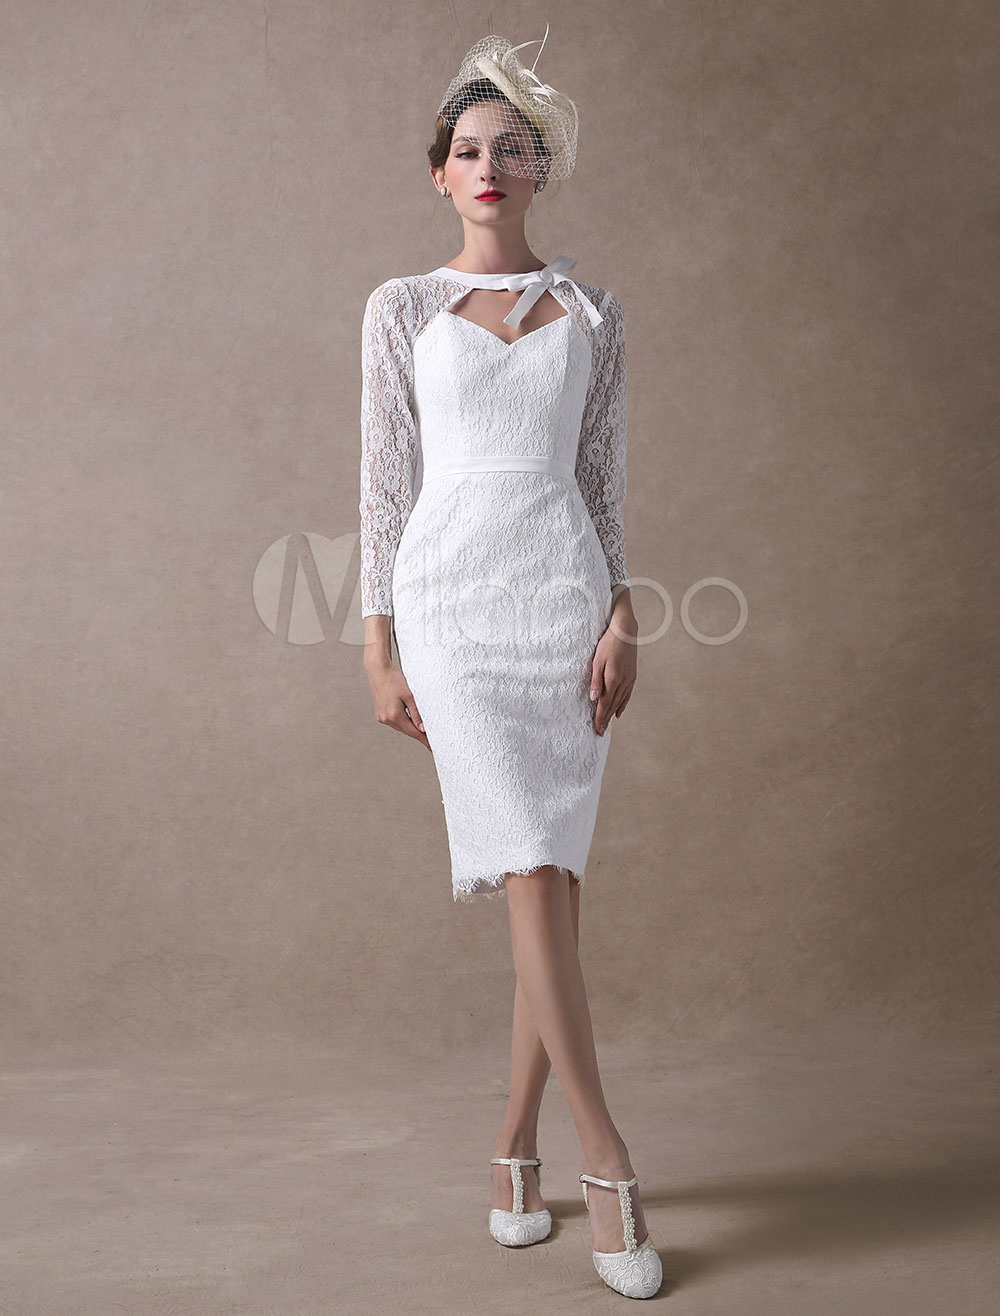 Short Wedding Dresses Lace Sheath Bridal Dress Long Sleeve Cut Out Ivory Knee Length Wedding Gowns